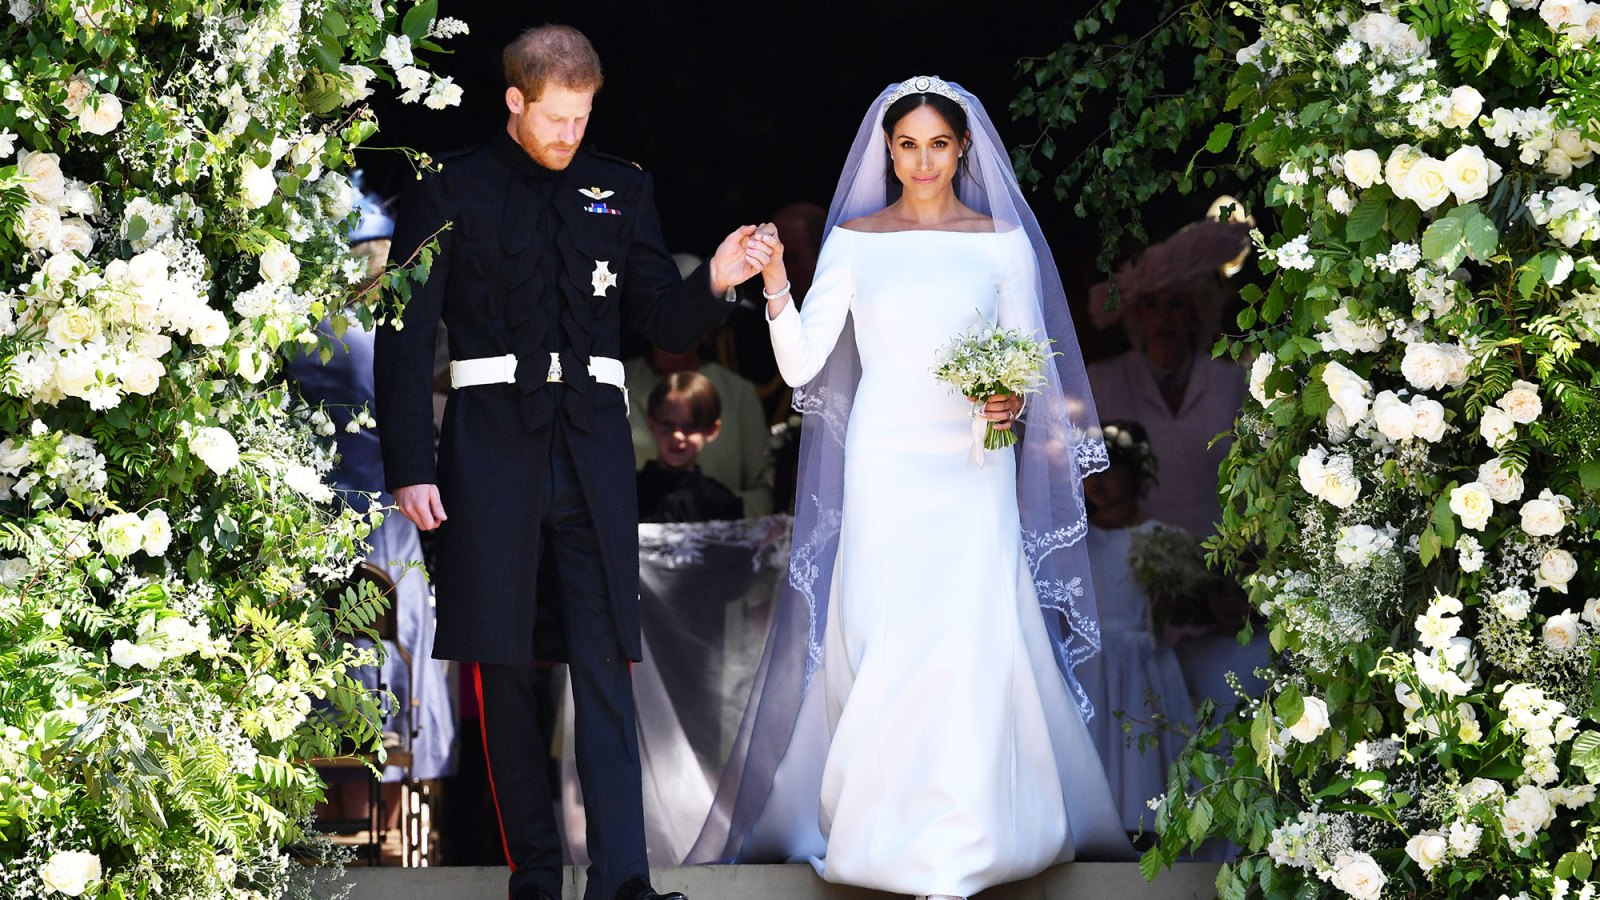 d08703eecdedd Meghan Markle's Wedding Florist Philippa Craddock Launches a Second Round  of Faux-Flower Hair Crowns and Clip Accessories